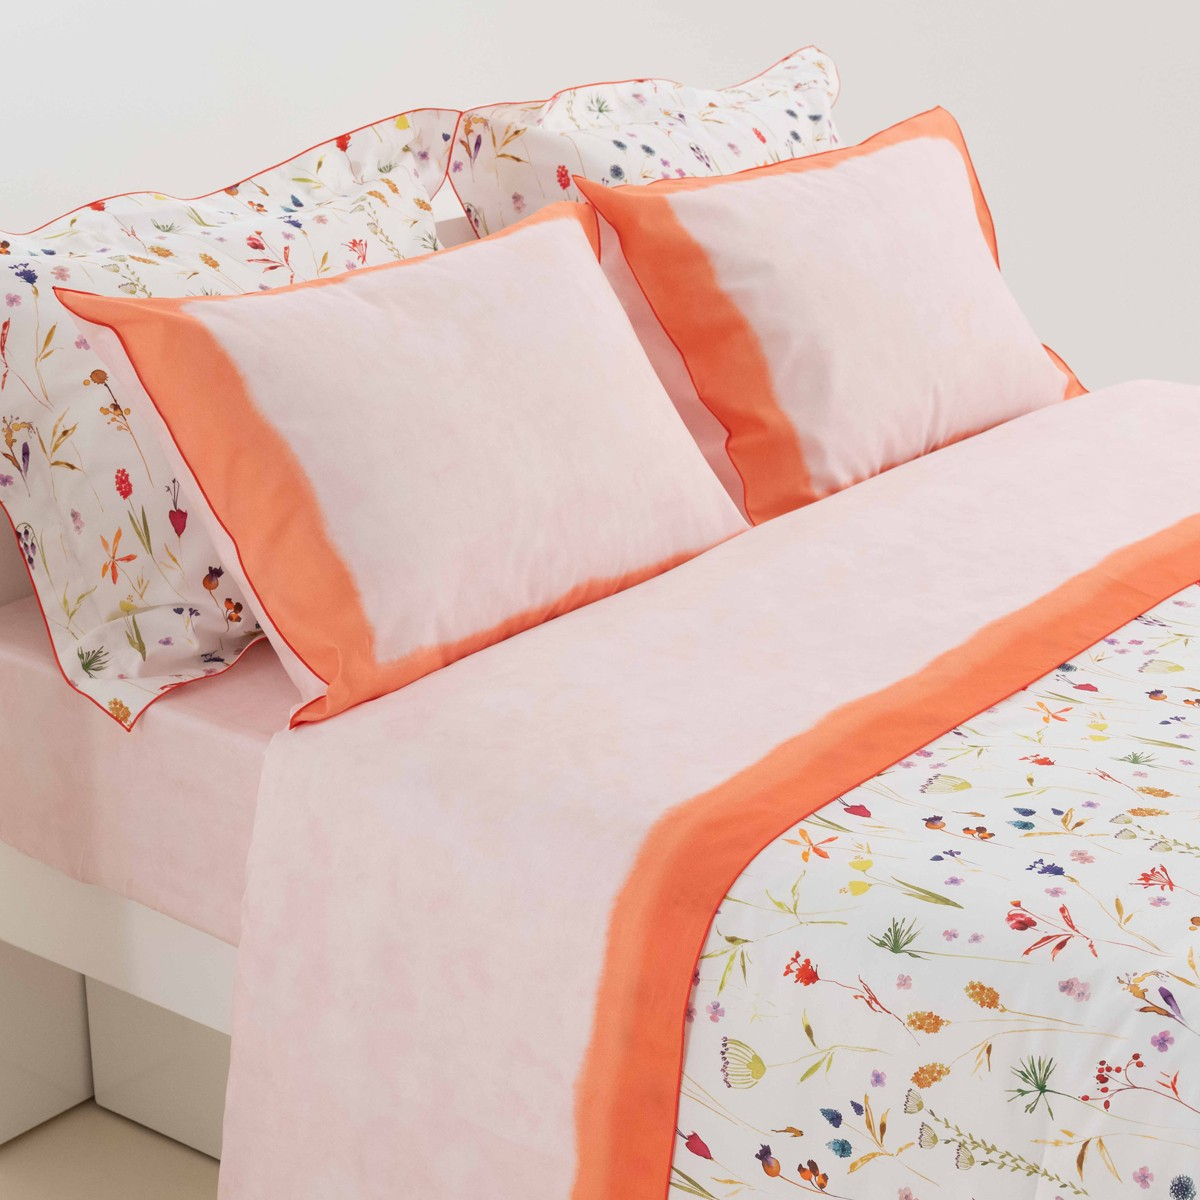 Sheet Set, Botany